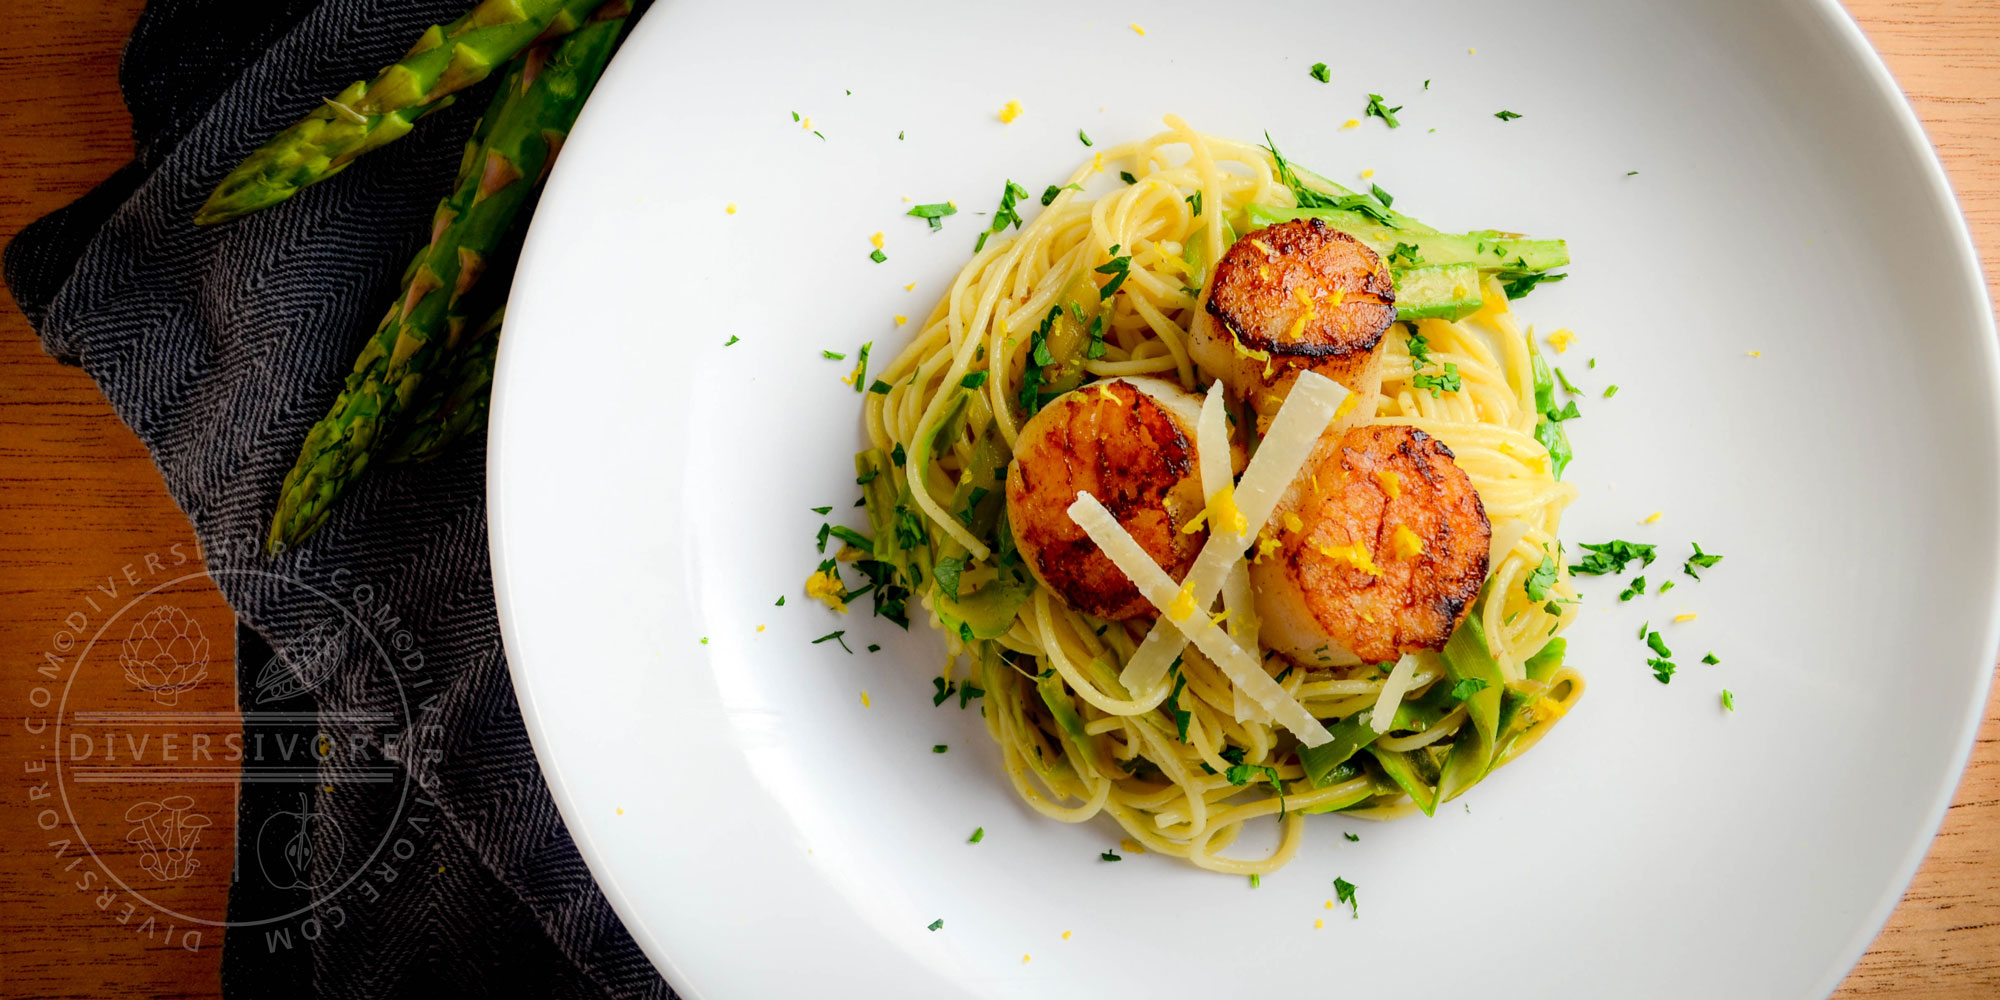 Scallops and Asparagus with Lemon Spaghettini - Diversivore.com